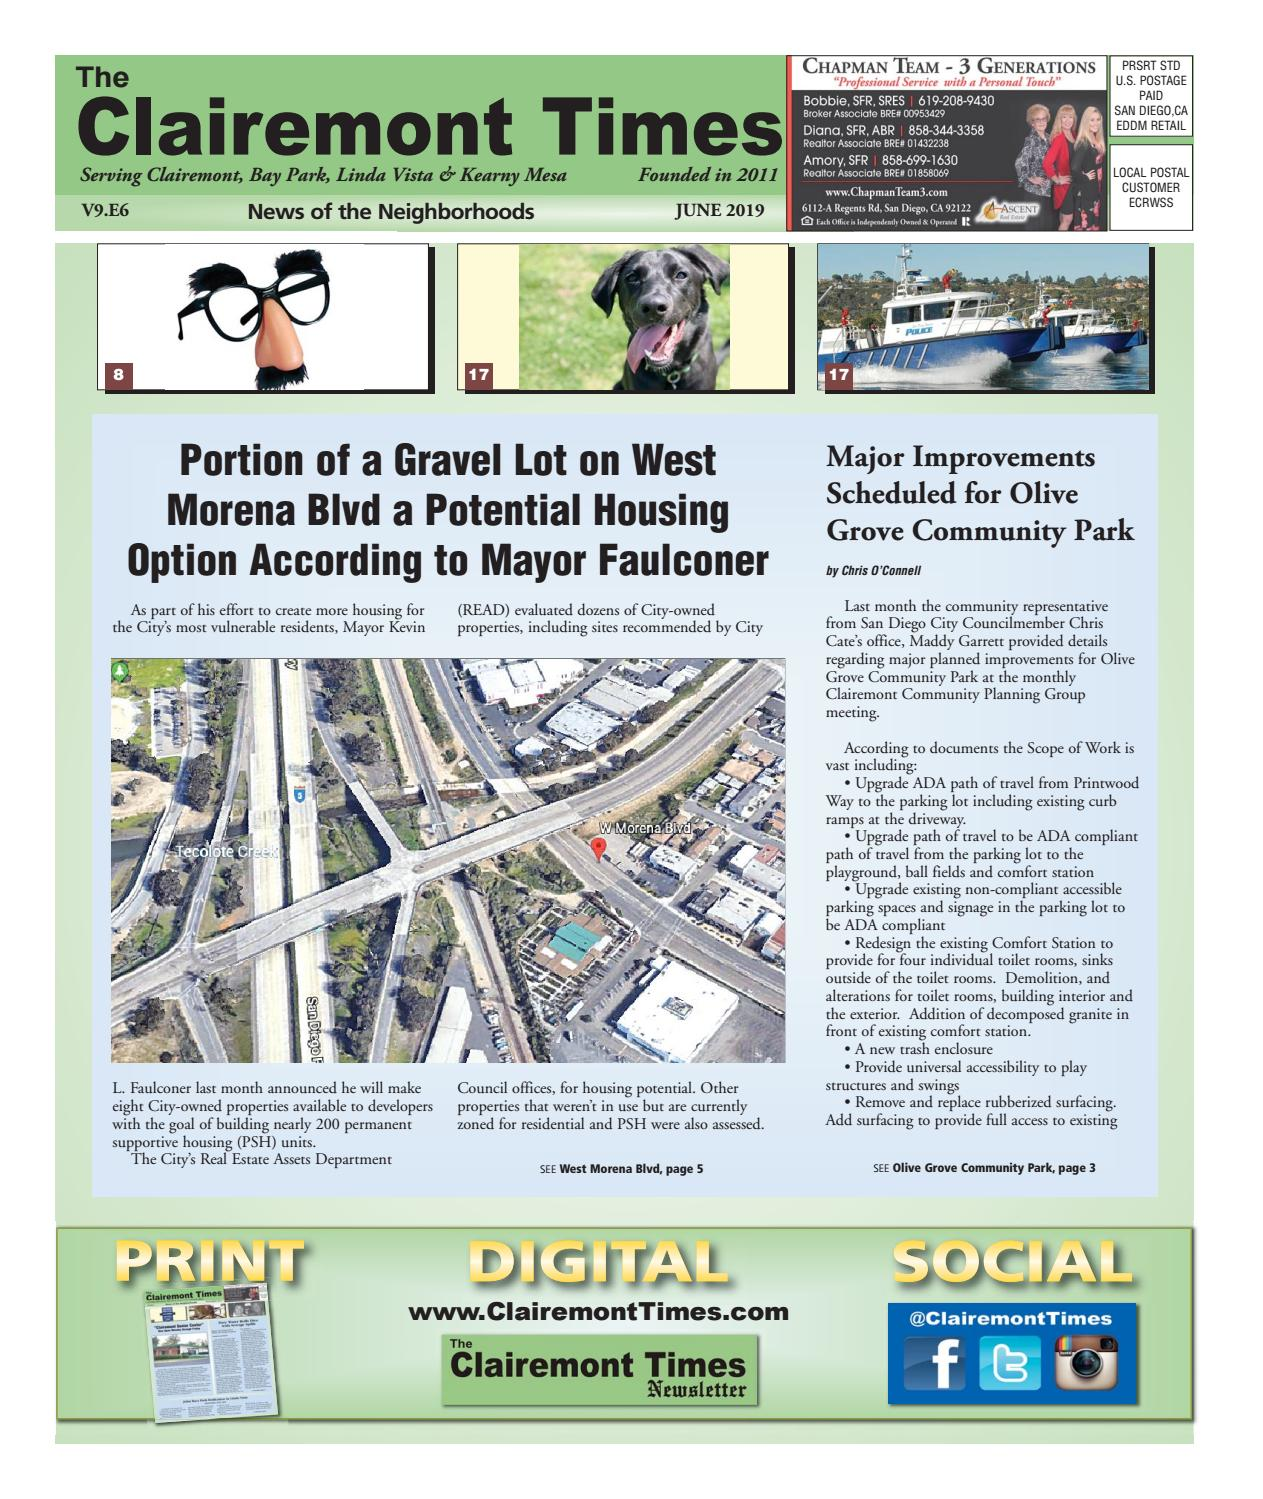 Midshore Regional E Cycle Events 2020.The Clairemont Times June 2019 By Clairemont Times Issuu